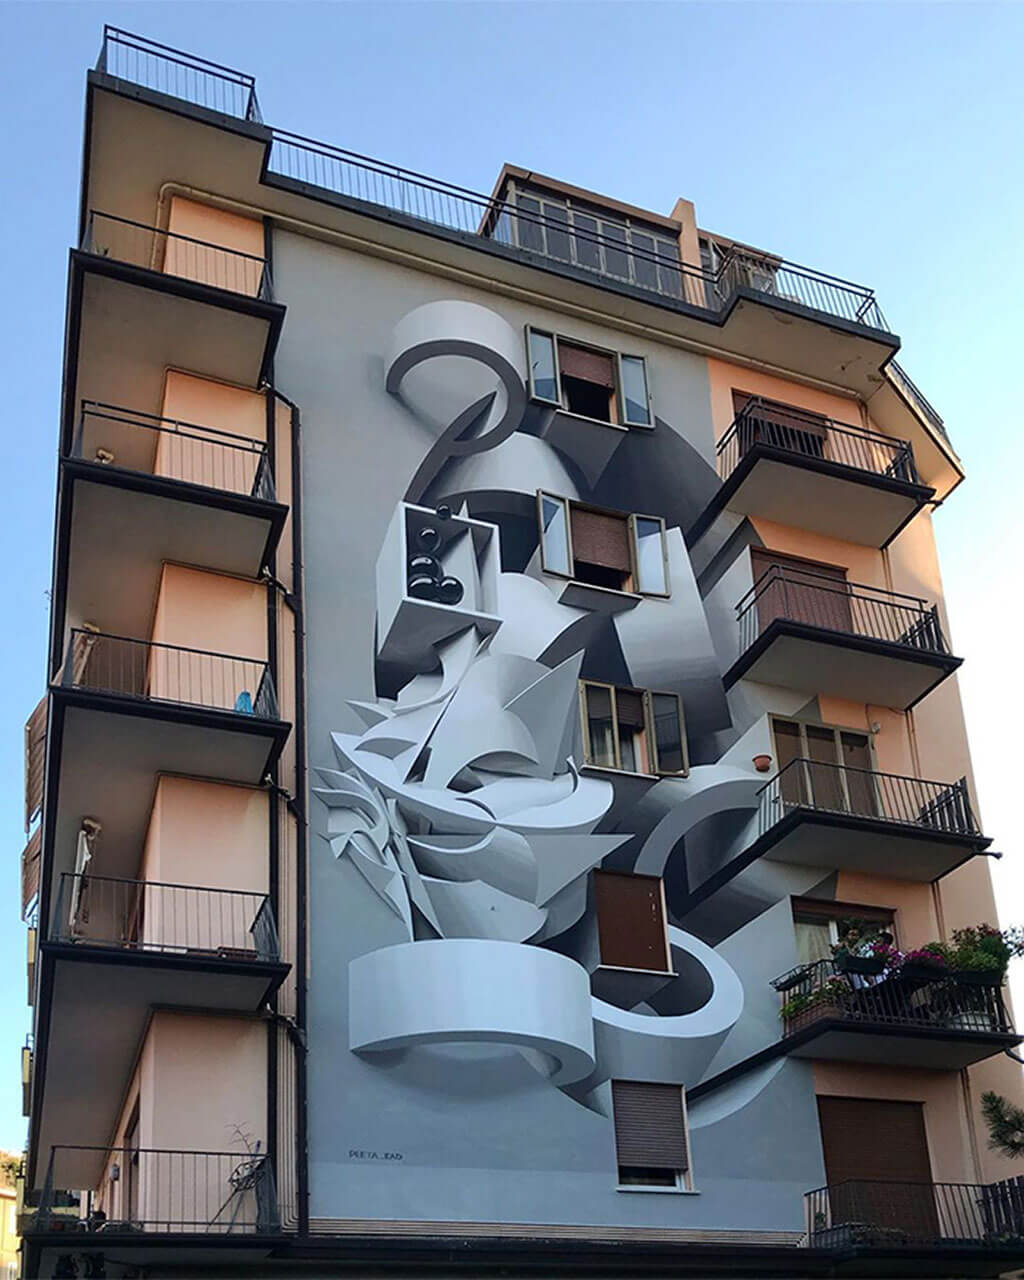 Optical illusion building art by Peeta